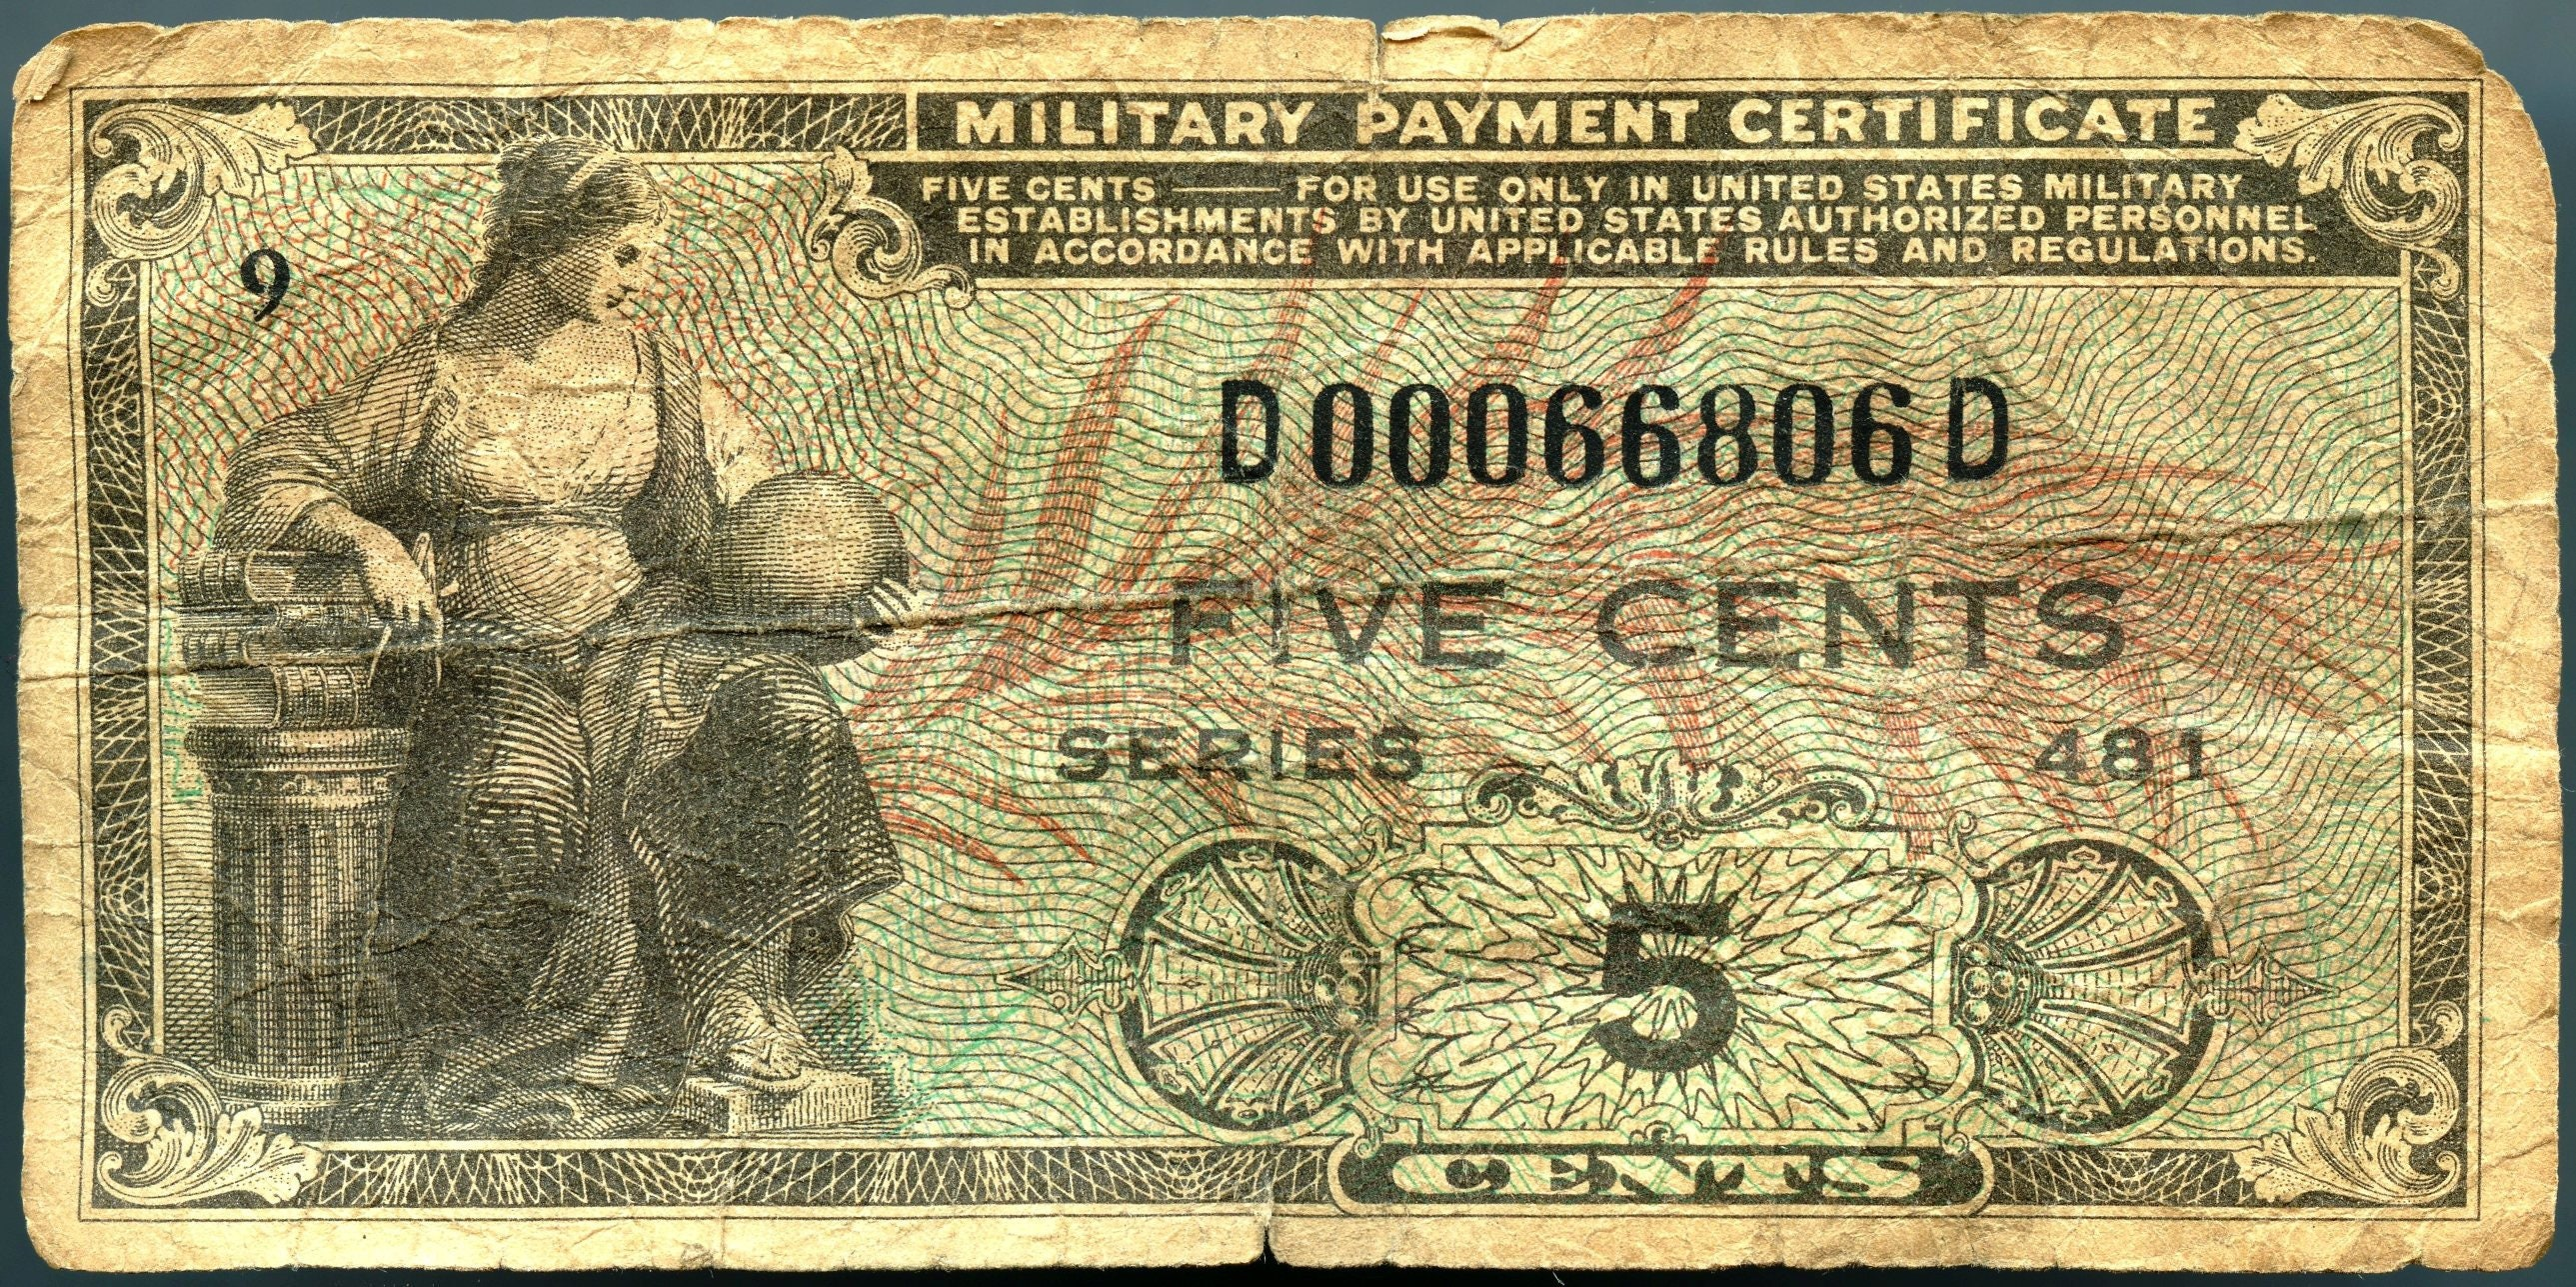 5 Cent Military Payment Certificate Series 481 Very Good Etsy